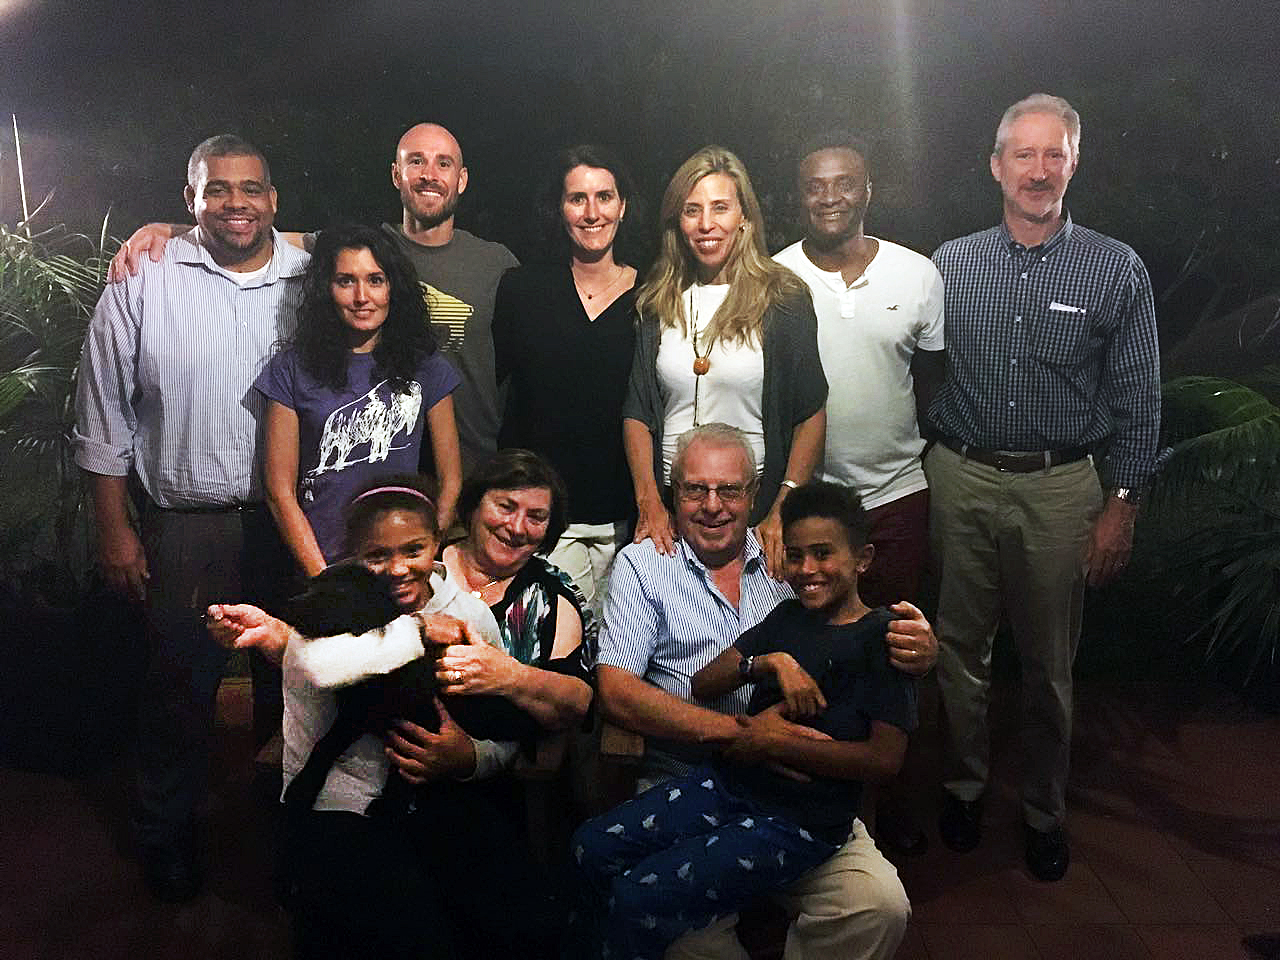 Western New Yorkers who enjoyed a holiday wing party in Nairobi are, front row, Sofia Kimuyu, holding Buddy, Christine Kurbiel, Roman Kimuyu on the lap of Steve Kurbiel; second row: Dr. Ben Piper from Lewiston, Dan Corrigan  from Williamsville, Jackie Corrigan from Grand Island, Sarah Skorupski from Buffalo, Lisa Kurbiel from North Tonawanda, Johnson Kimuyu, NT by marriage, and United States Ambassador Steven Schwartz from Williamsville.